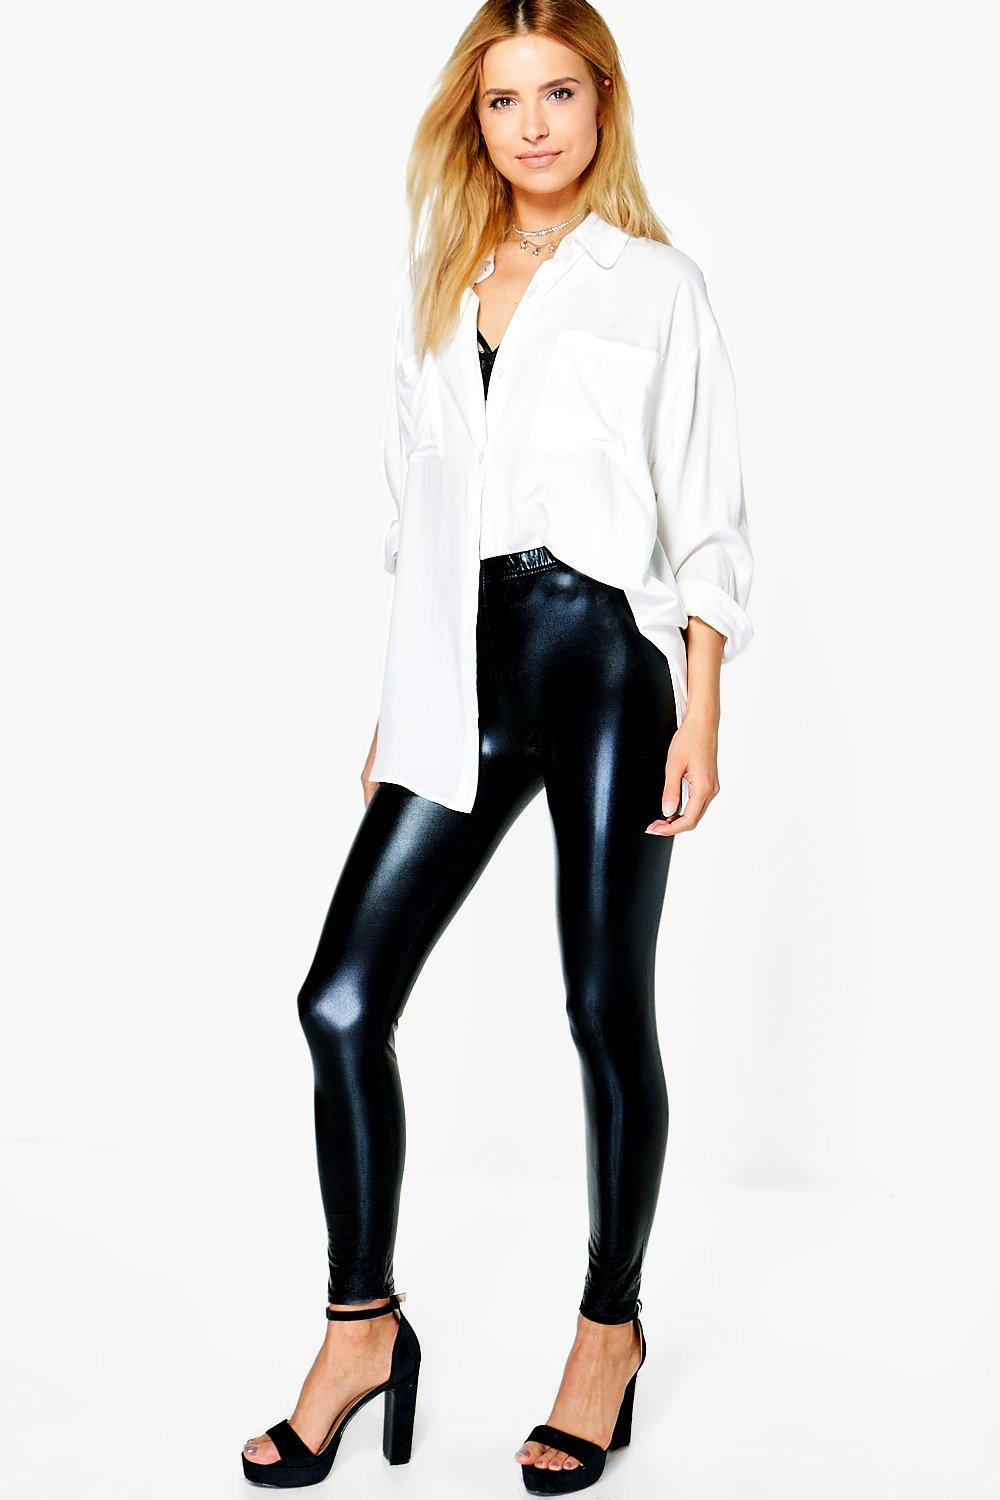 Yazmine Wet Look Leggings